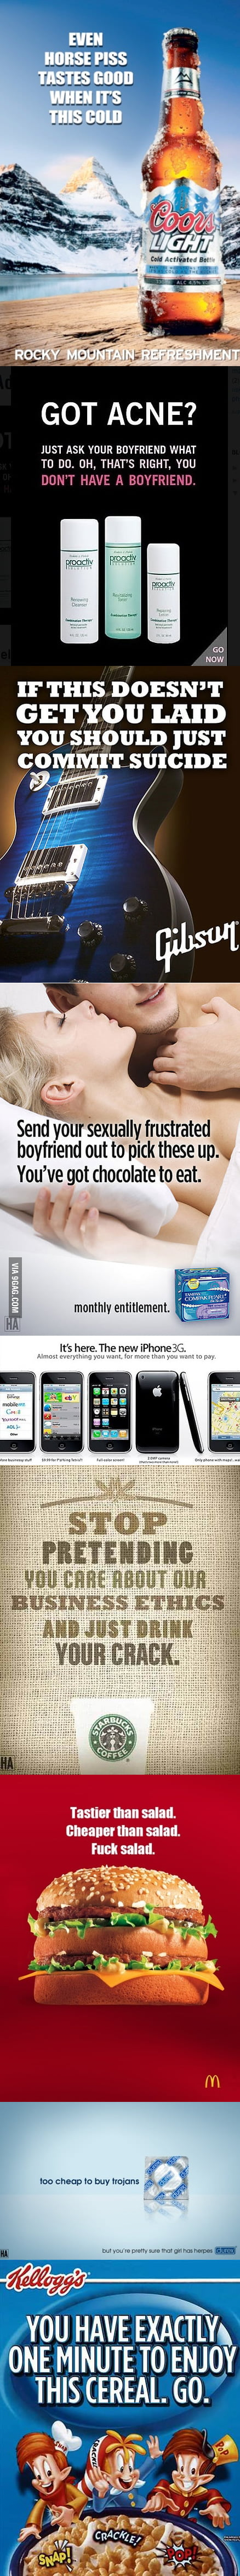 If advertisements told the truth